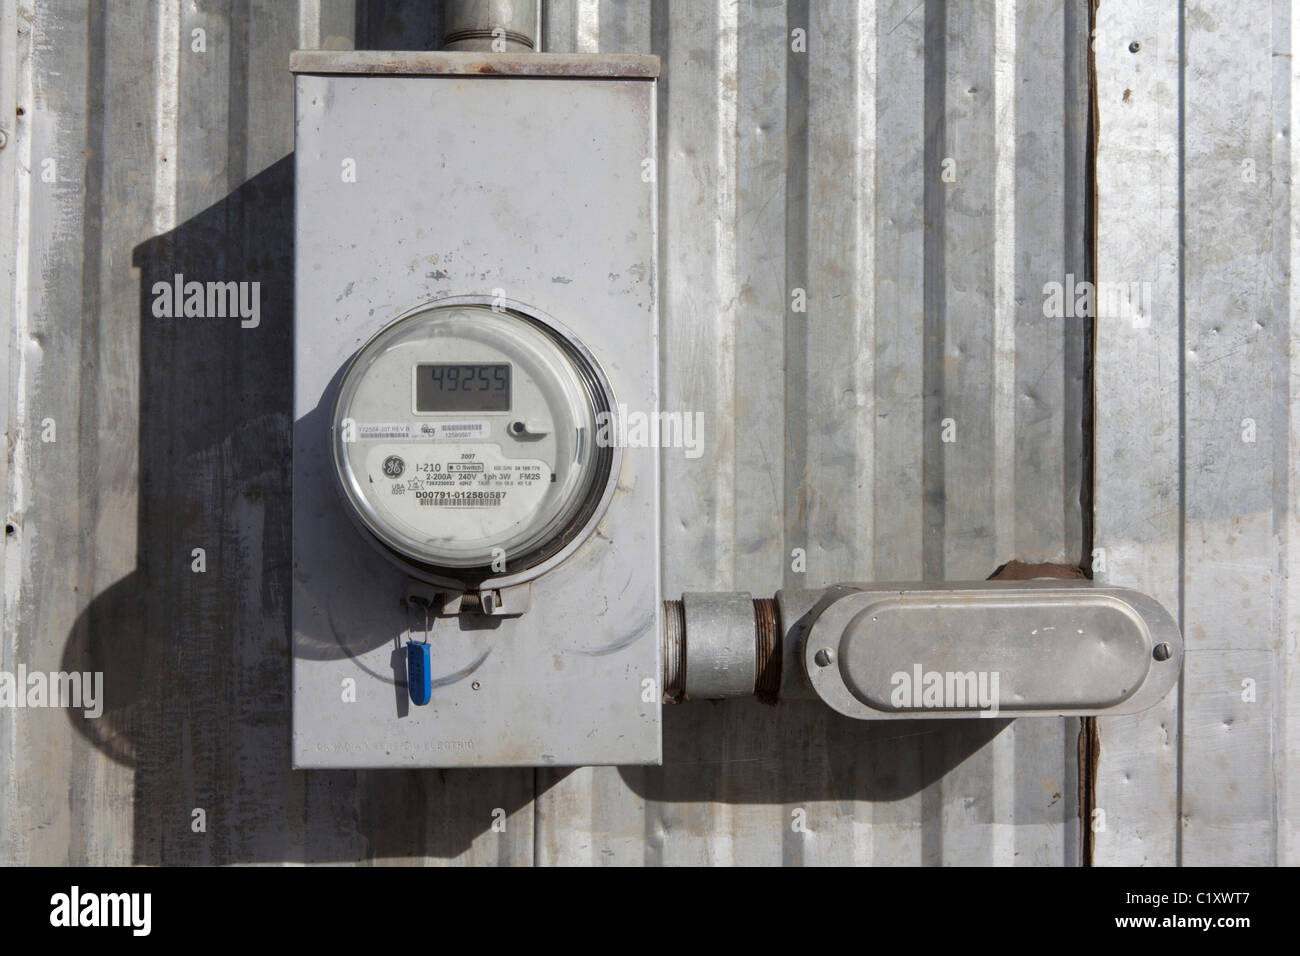 Water meter at the FIRST NATIONS LOUBACON PEACE RIVER RESERVATION - Stock Image